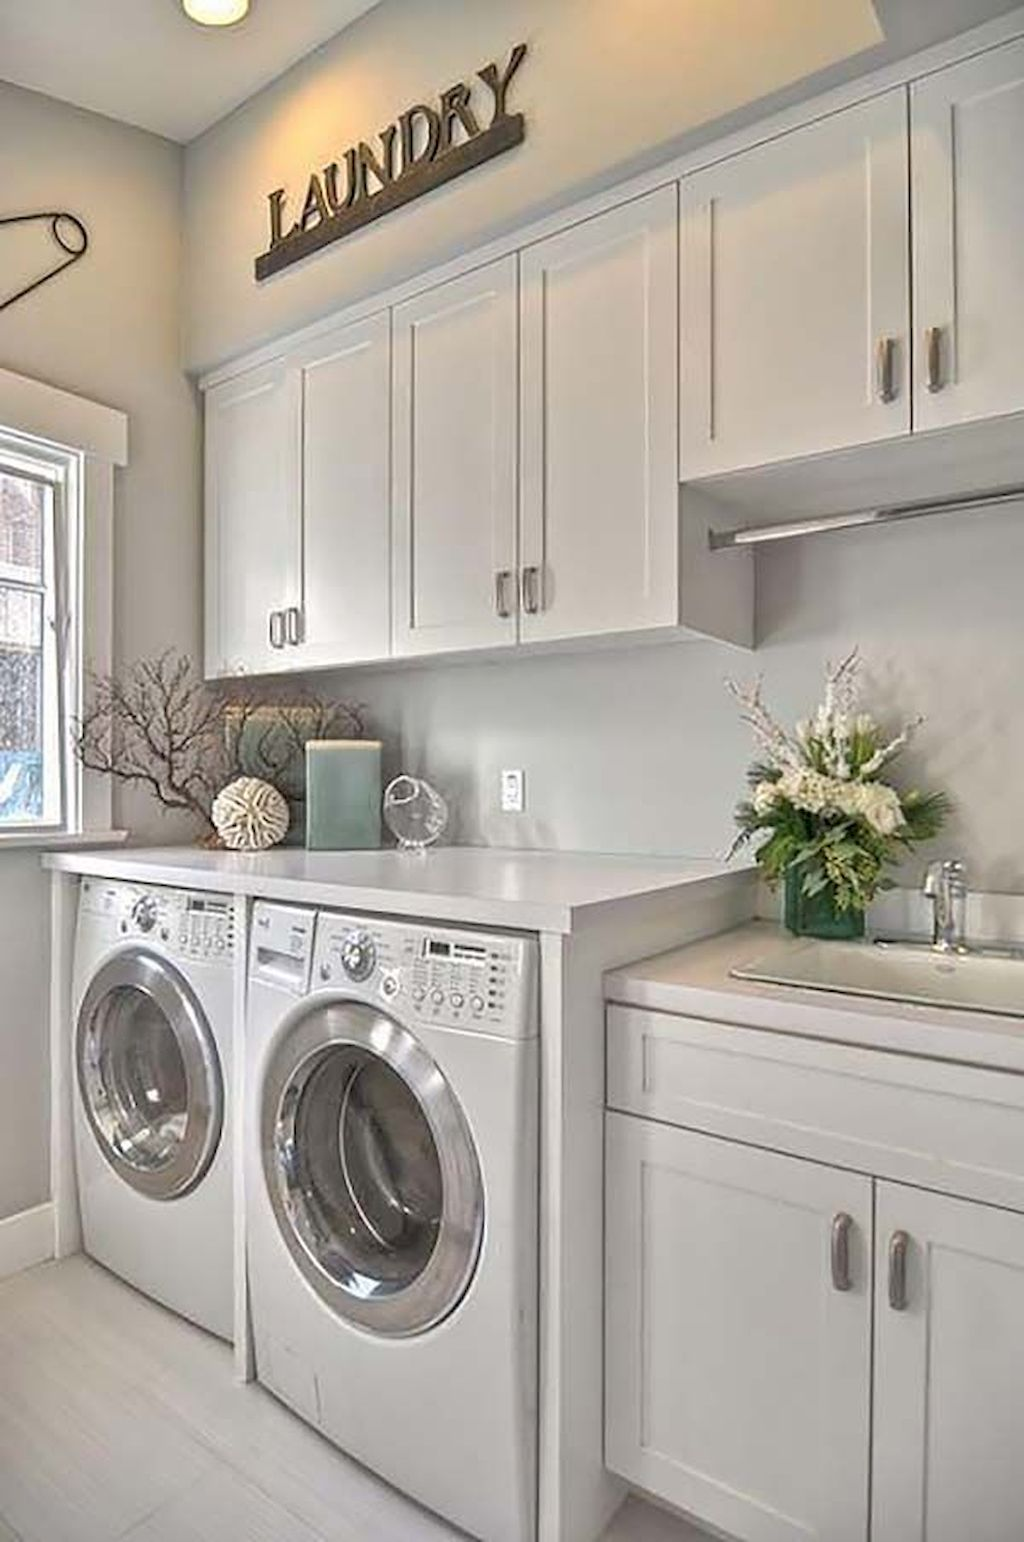 Design Ideas For Your Laundry Room Organization (99)